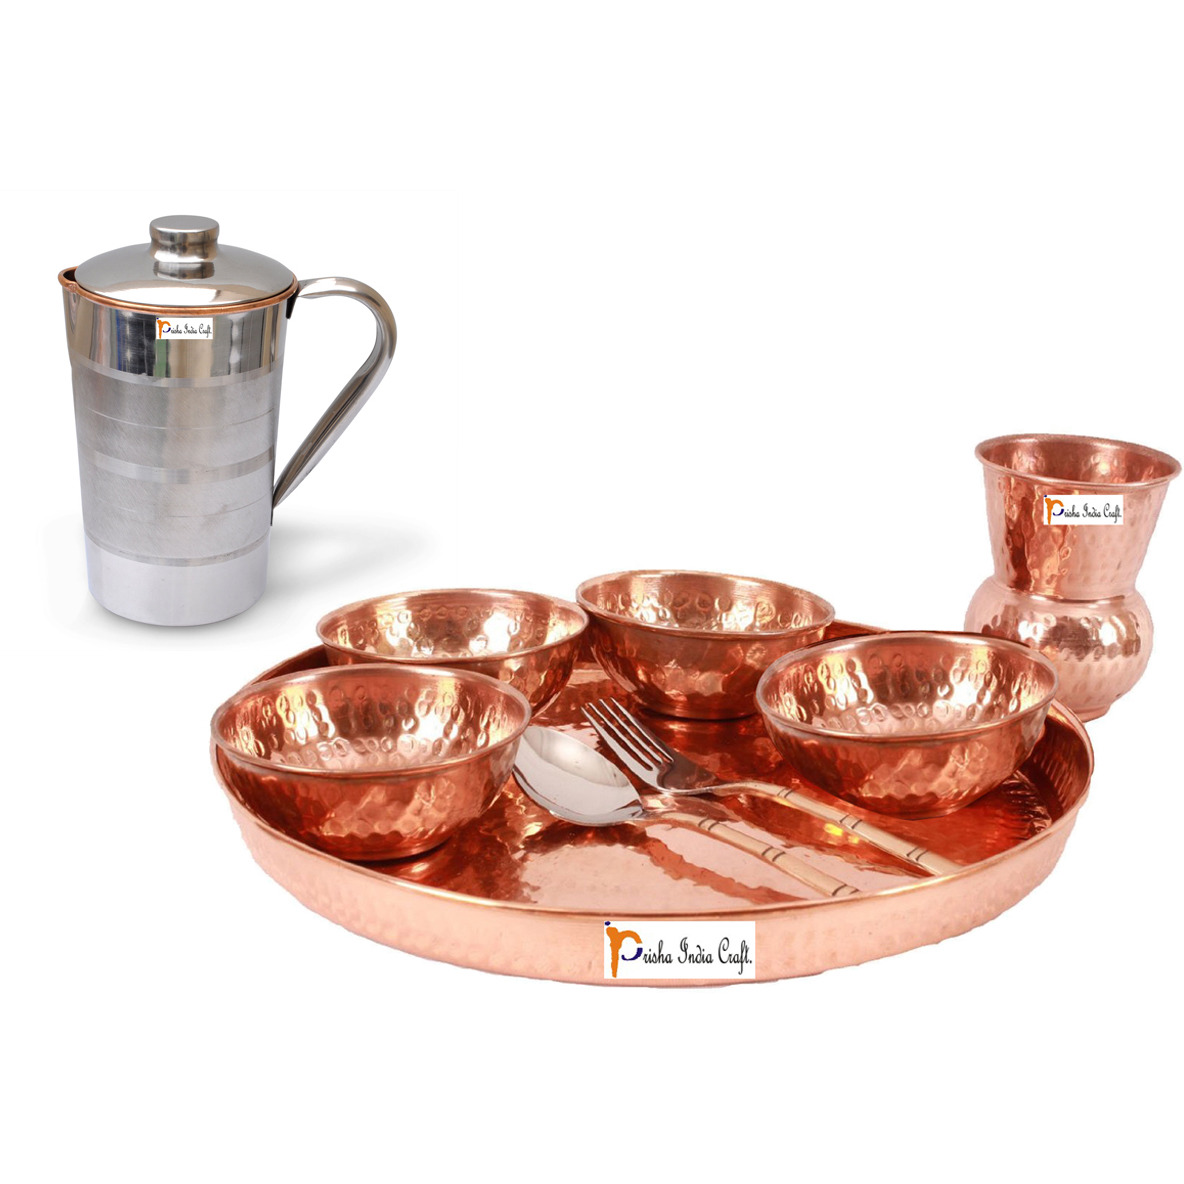 Prisha India Craft B. Dinnerware Traditional 100% Pure Copper Dinner Set of Thali Plate, Bowls, Glass and Spoon, Dia 12  With 1 Pure Copper Pitcher Jug - Christmas Gift